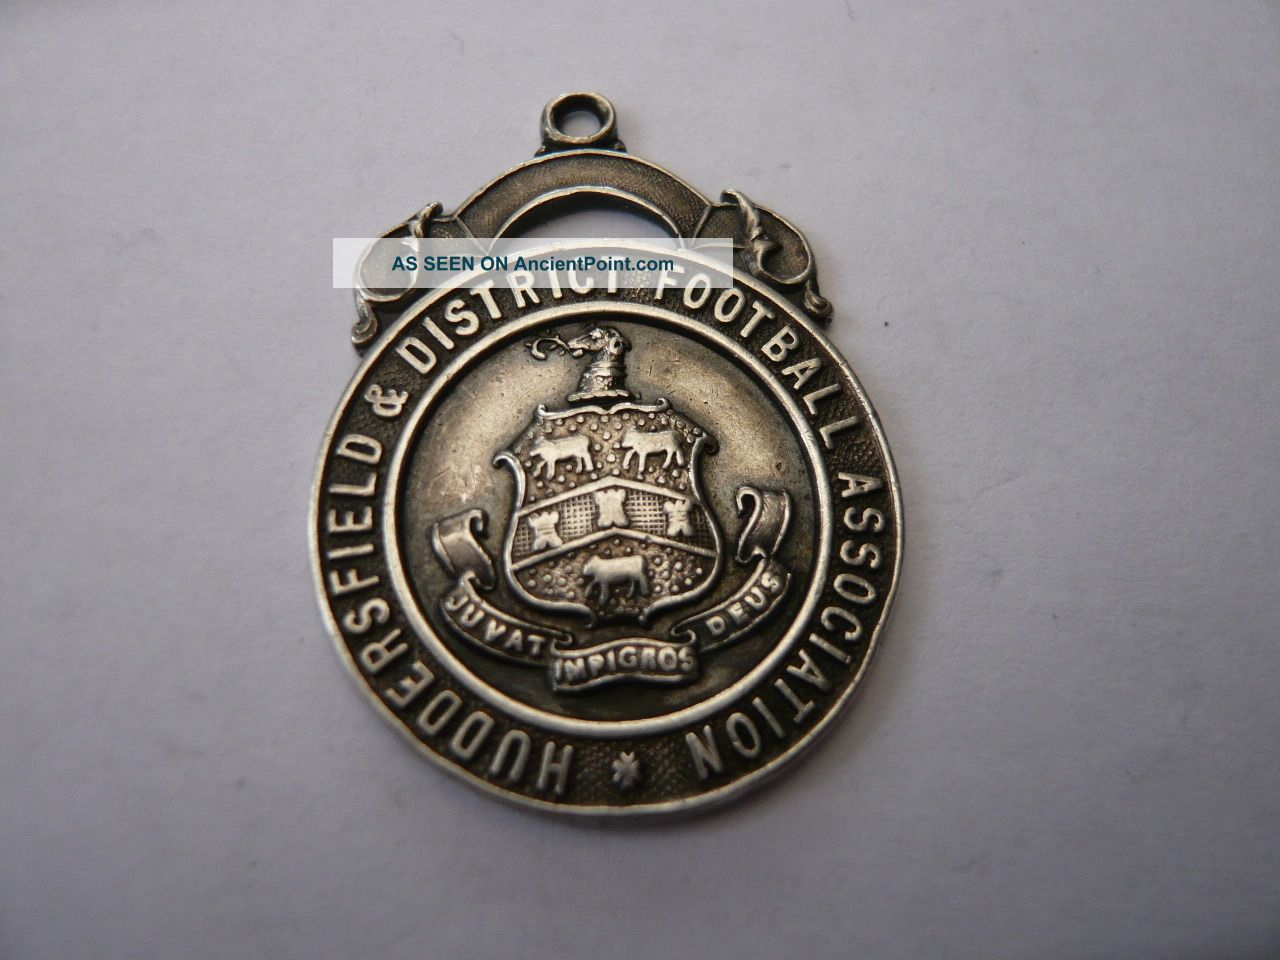 Good Vintage Sterling Silver Pocket Watch Chain Fob Medal Football Huddersfield Pocket Watches/ Chains/ Fobs photo